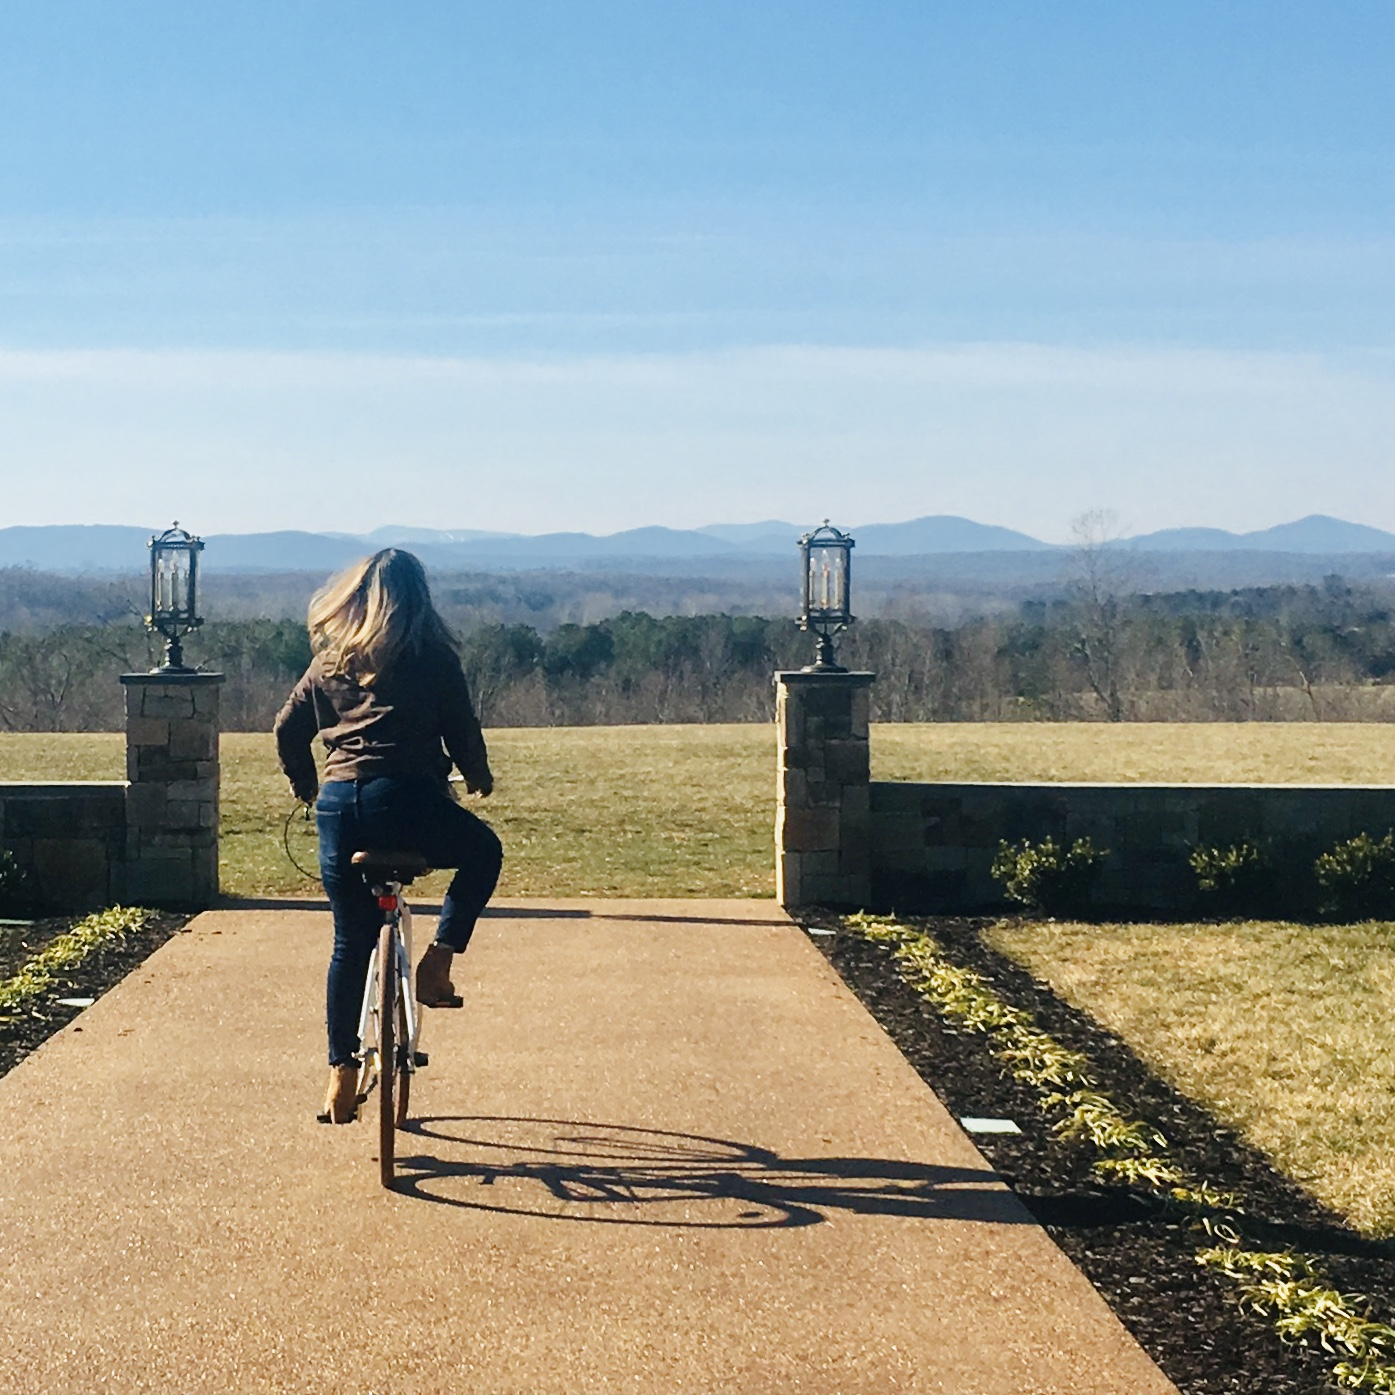 Mount Ida Sunset Excursion Flights in Fall October 20 3pm-7pm - Ride, then sip flights while the sun falls behind the Blue Ridge MountainsMount Ida Reserve Tasting Room and TaphouseRIDE • SAVOR • CONNECT